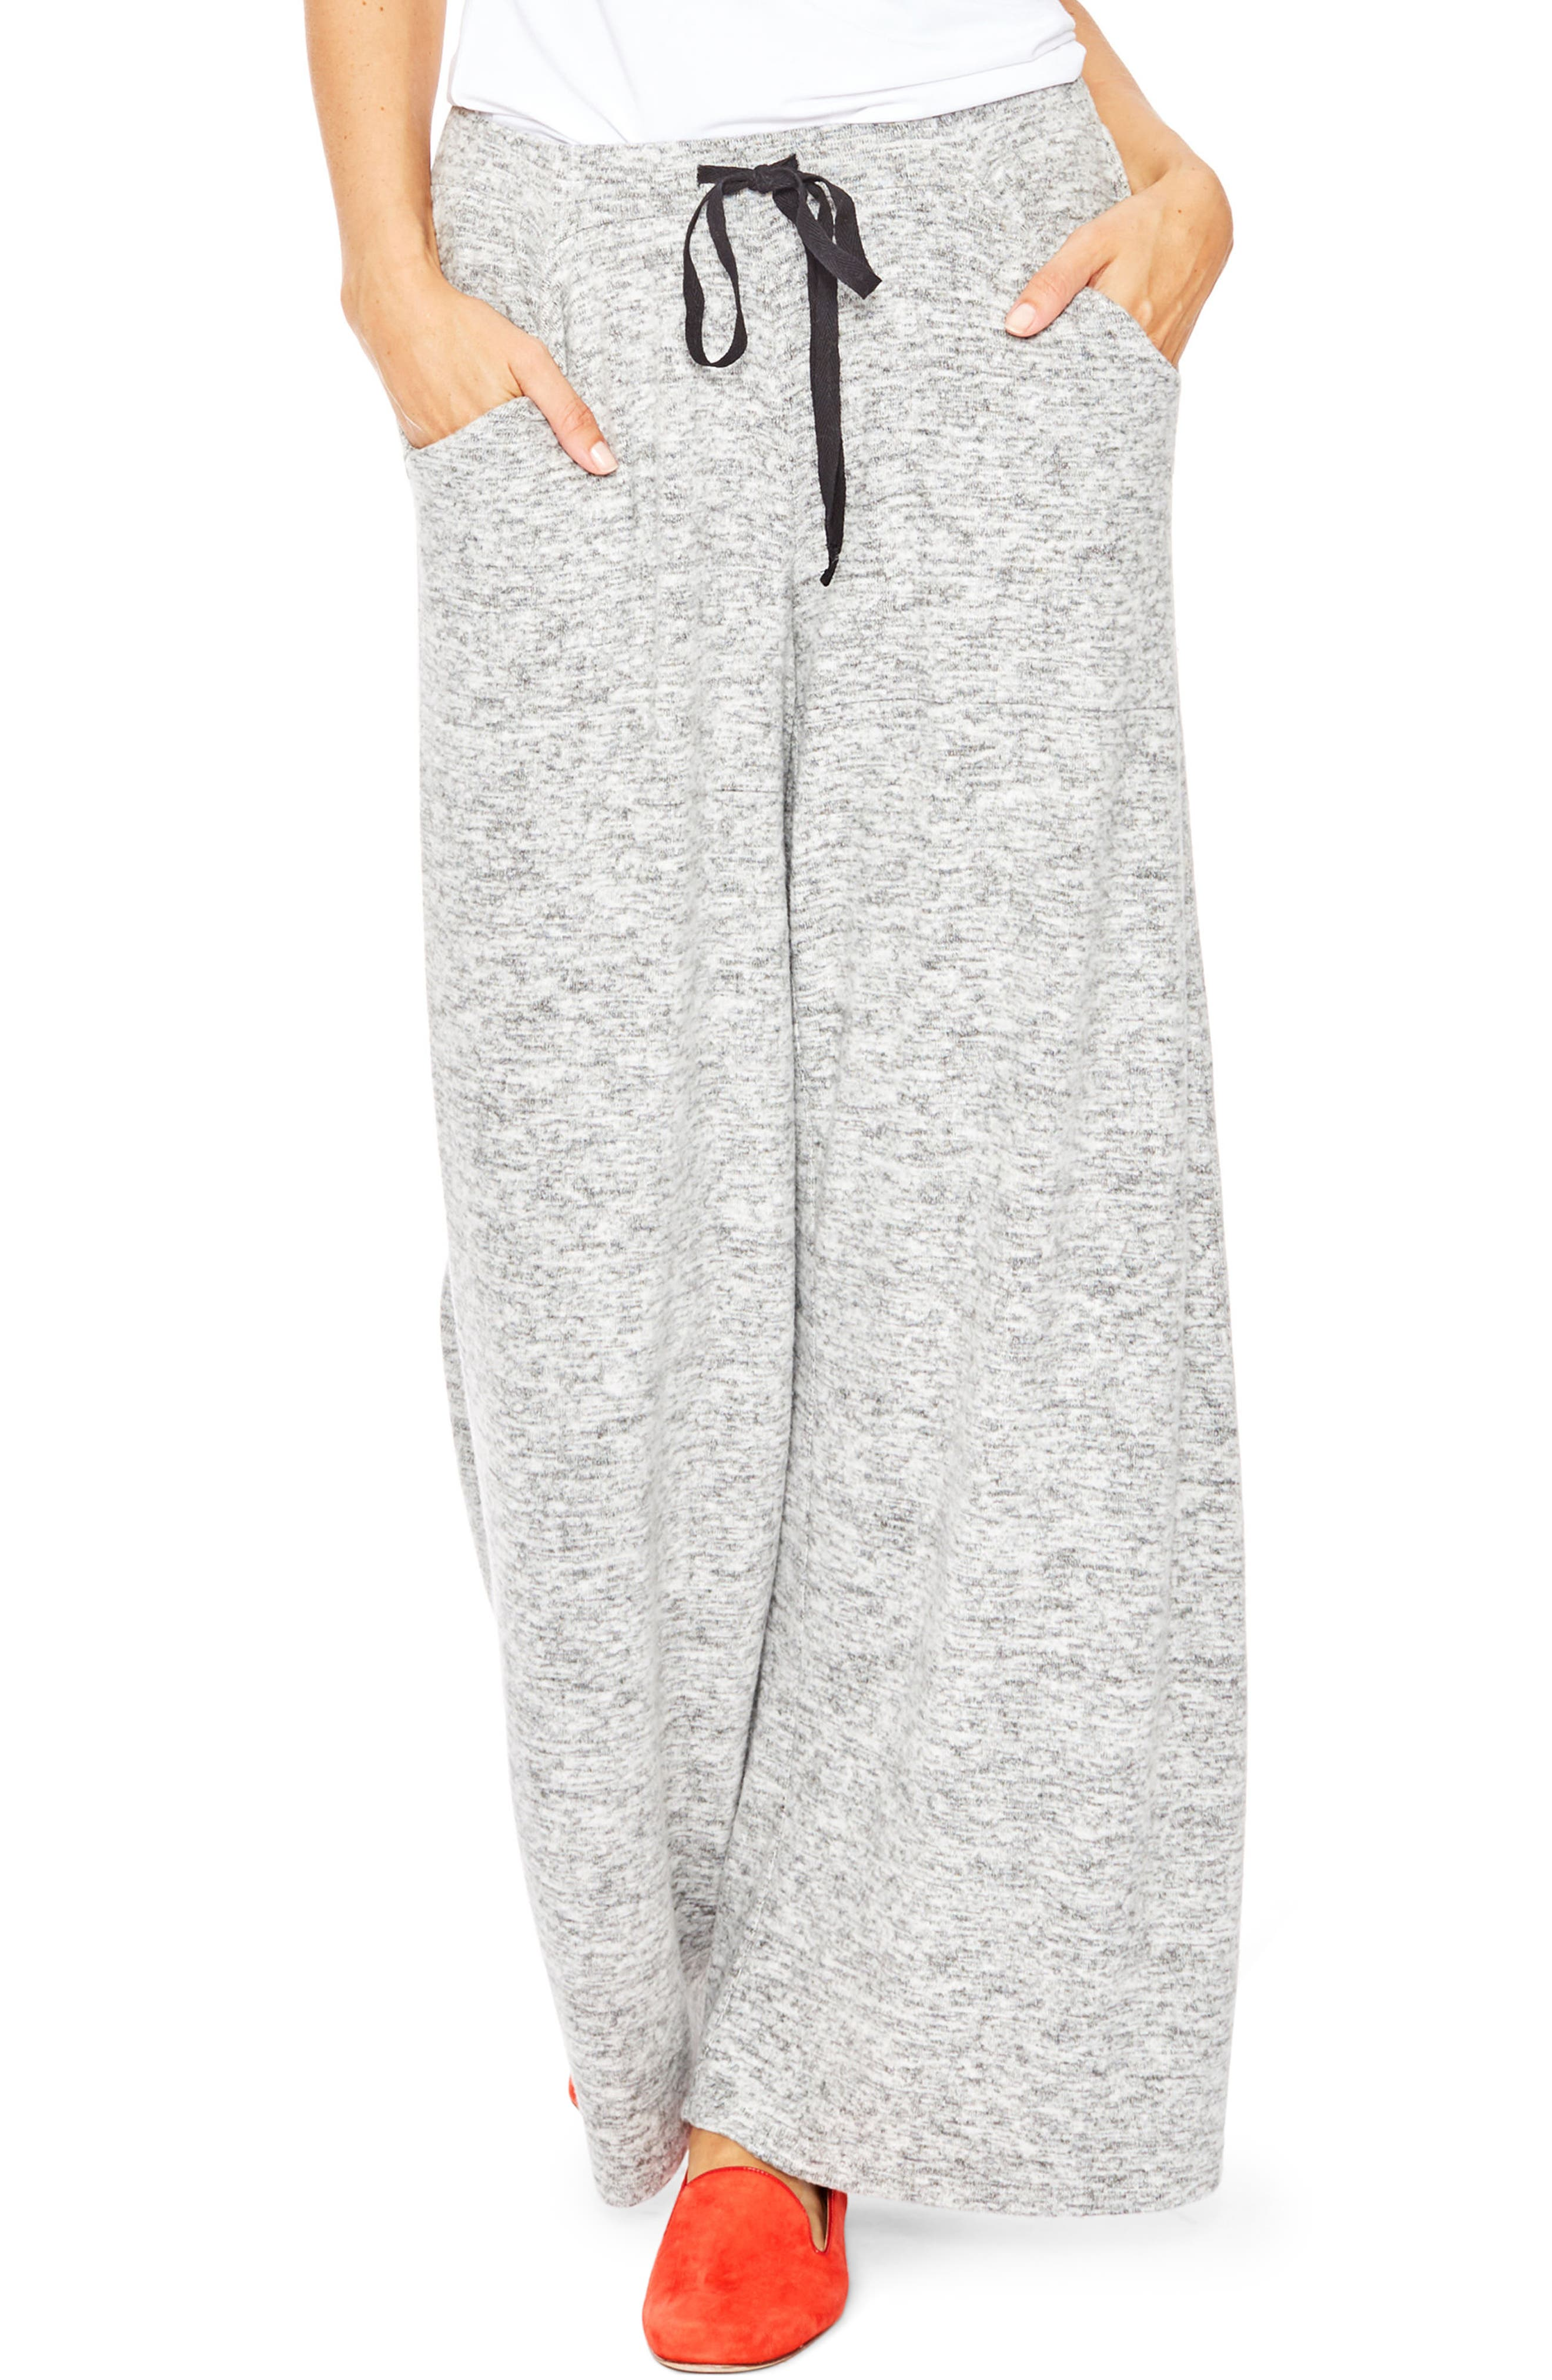 Alternate Image 1 Selected - Rosie Pope Riley Maternity Sweatpants